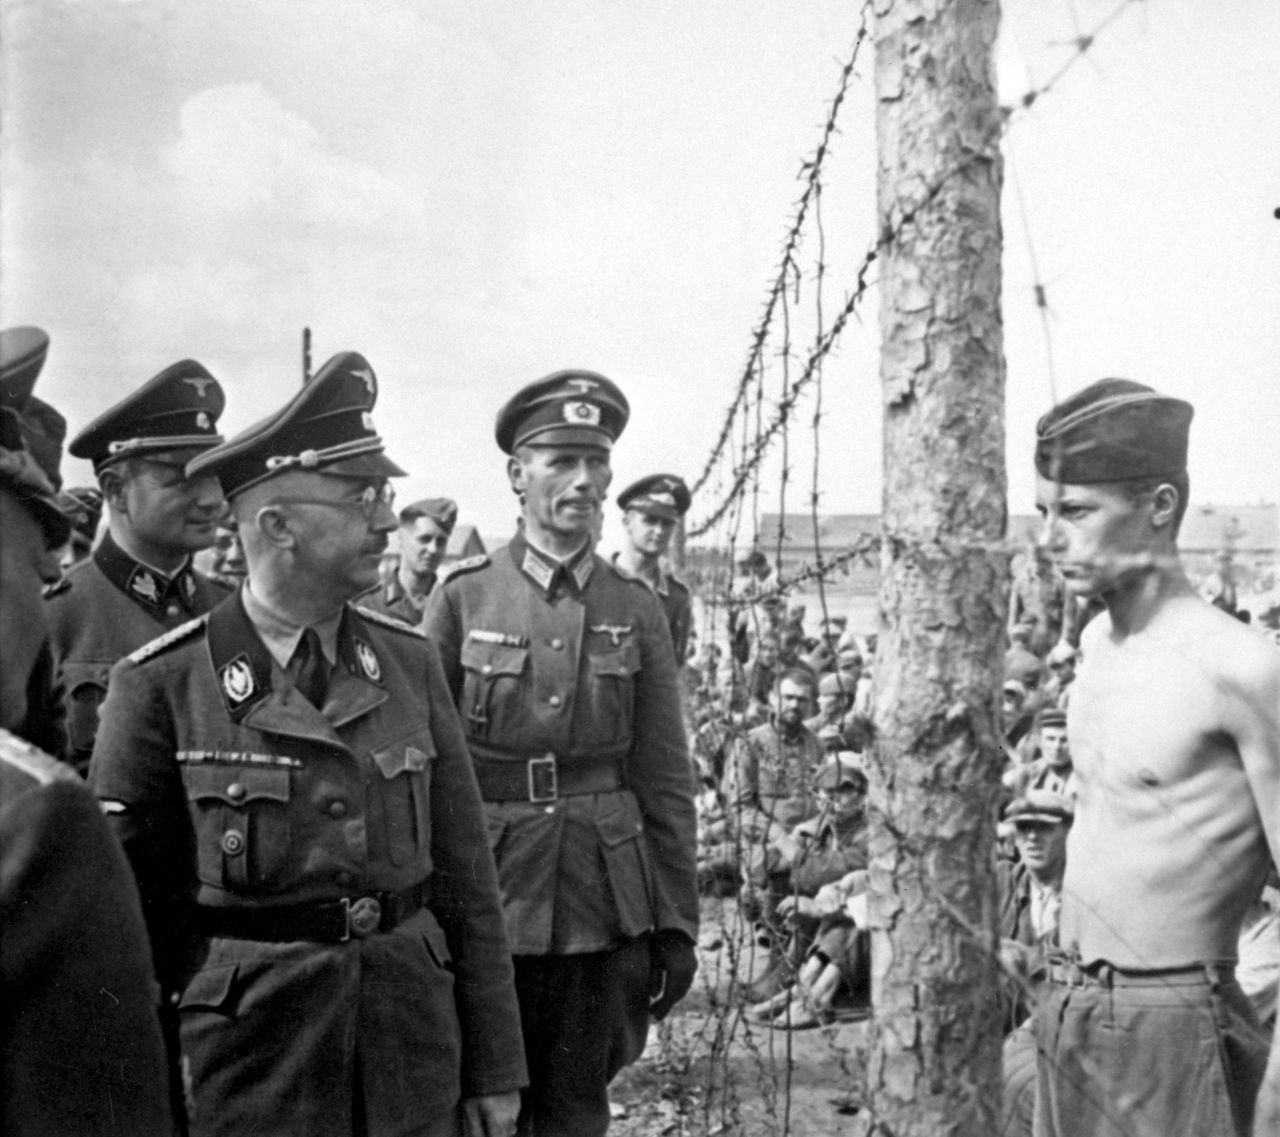 mercilesss:  The prisoner defiantly stares down Heinrich Himmler, Hitler's right-hand-man, who was responsible for the Holocaust. Greasley's confrontation with Himmler took place during an inspection of the camp he was confined to. The inmates were ordered to remain seated, but Greasley refused. Horace Greasley also escaped the death camp, but sneaked back in to rescue a German woman whom he had fallen in love with.